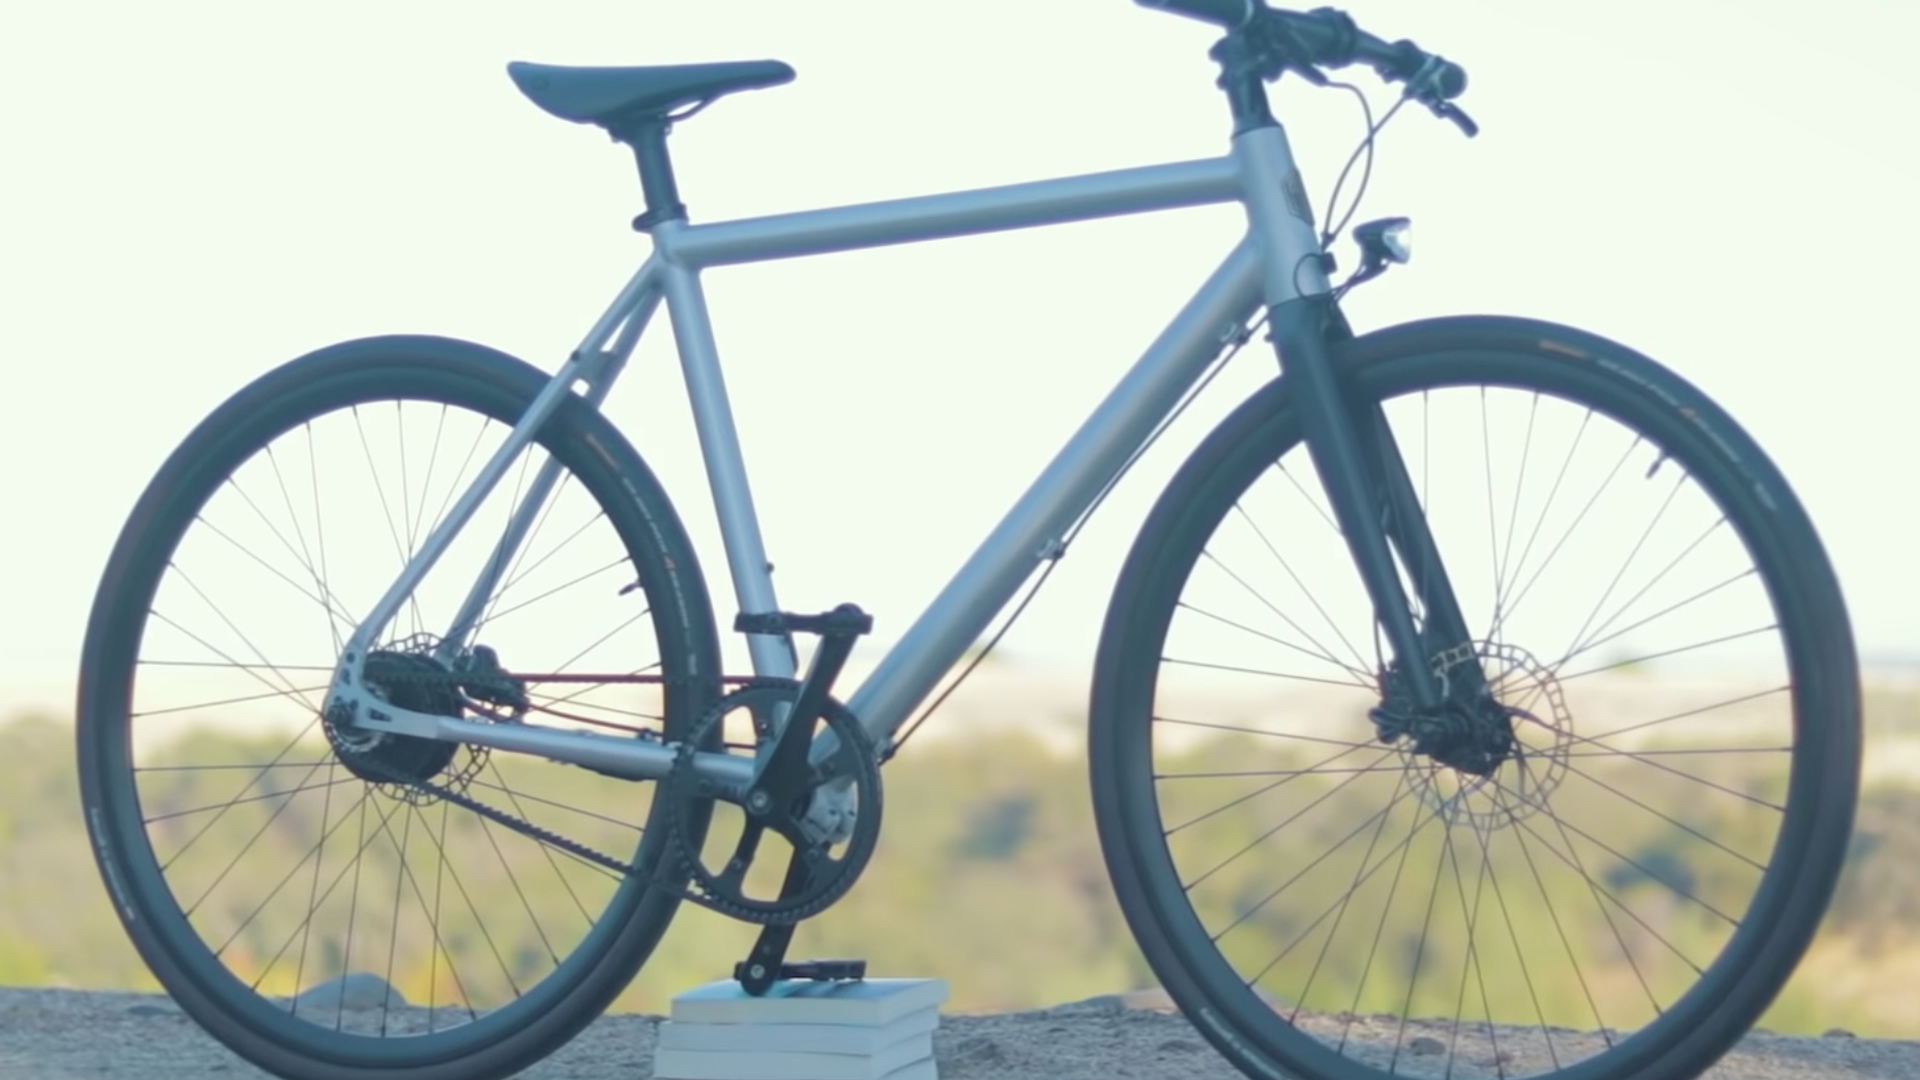 electrified-reviews-ampler-curt-single-speed-electric-bike-review-main.jpg